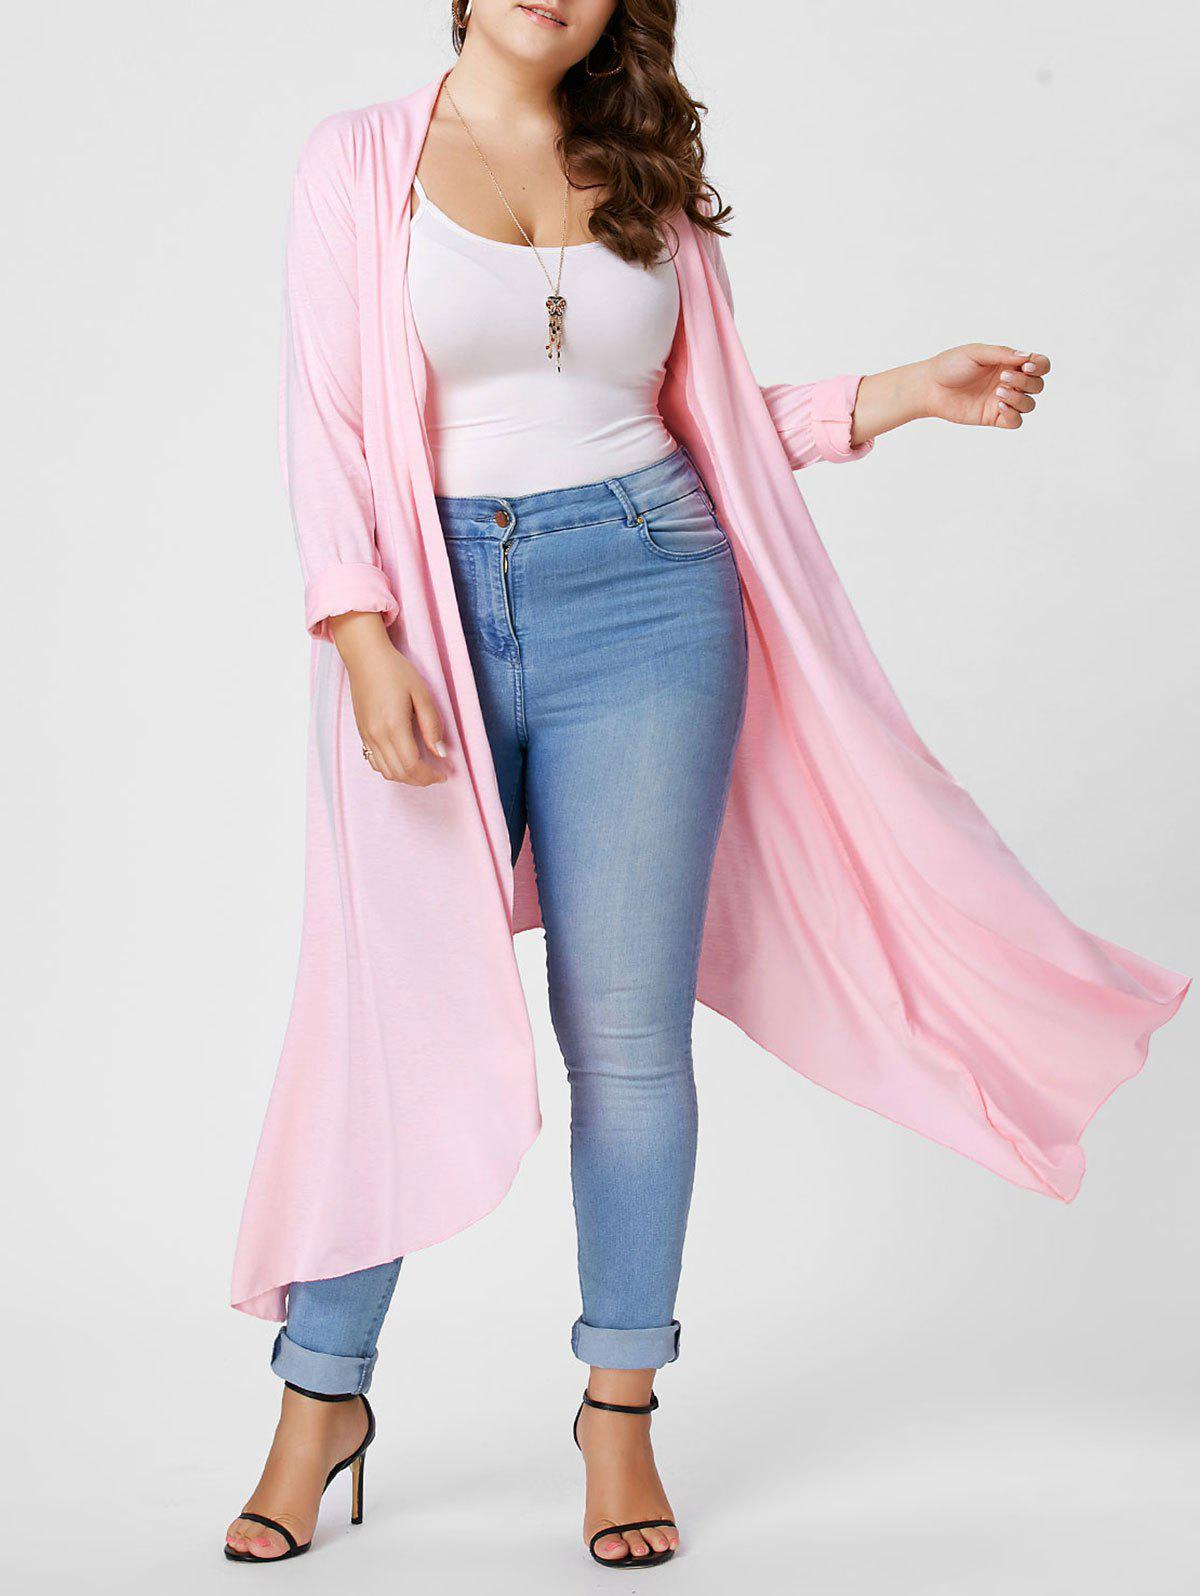 Plus Size Maxi Asymmetric Front Open CardiganWOMEN<br><br>Size: 2XL; Color: LIGHT PINK; Type: Cardigans; Material: Cotton,Polyester; Sleeve Length: Full; Collar: Collarless; Style: Casual; Season: Fall,Winter; Pattern Type: Solid; Weight: 0.4800kg; Package Contents: 1 x Cardigan;